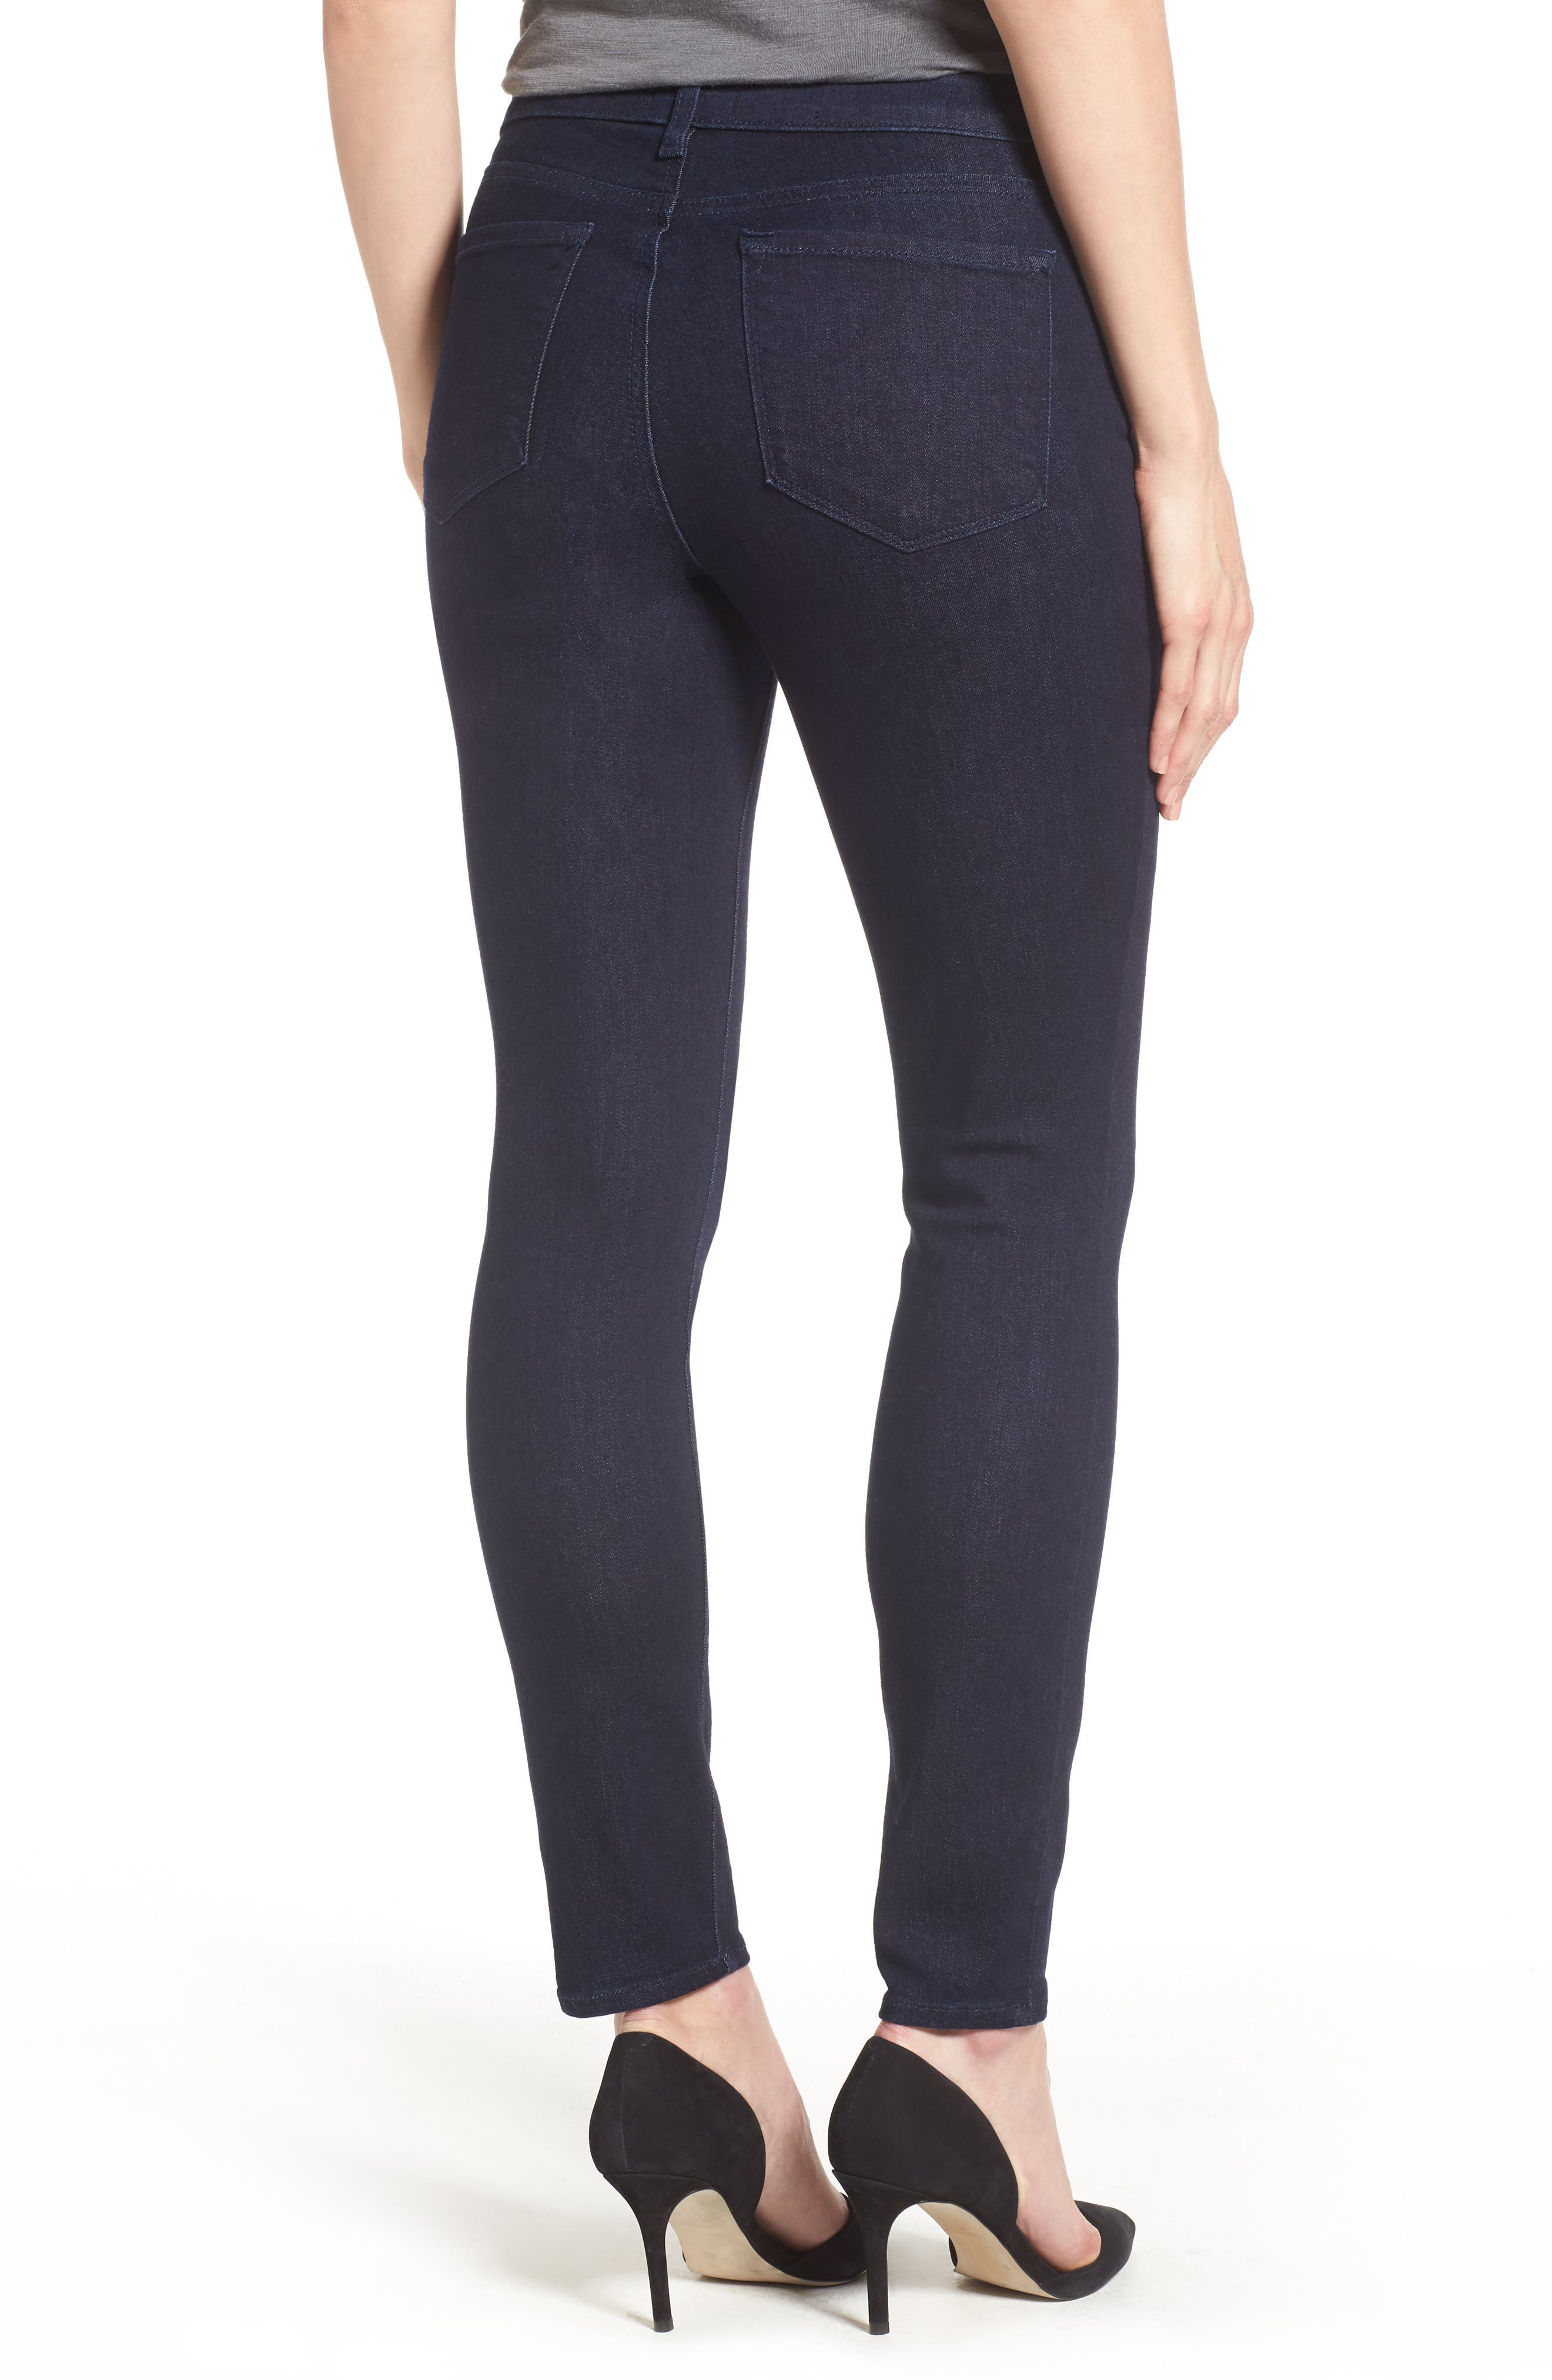 Alternate Image 2  - NYDJ Ami Stretch Skinny Jeans (Rinse) (Regular & Petite)